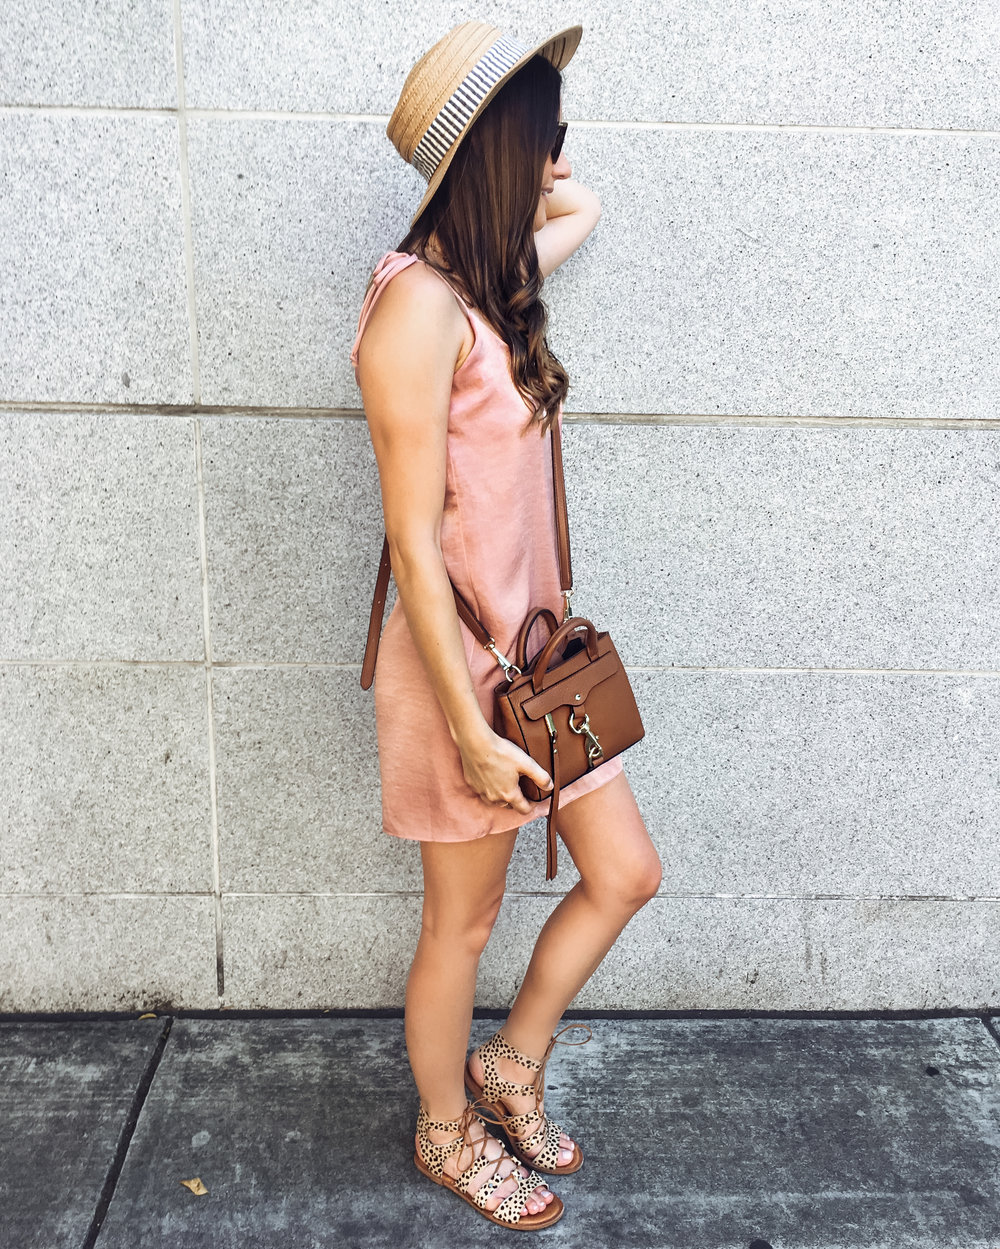 Shop the Look Below.  Nordstrom Dress  |  Dolce Vita Sandals  |  Nordstrom Hat  |  Rebecca Minkoff Bag  | Nordstrom BP necklace - similar  here